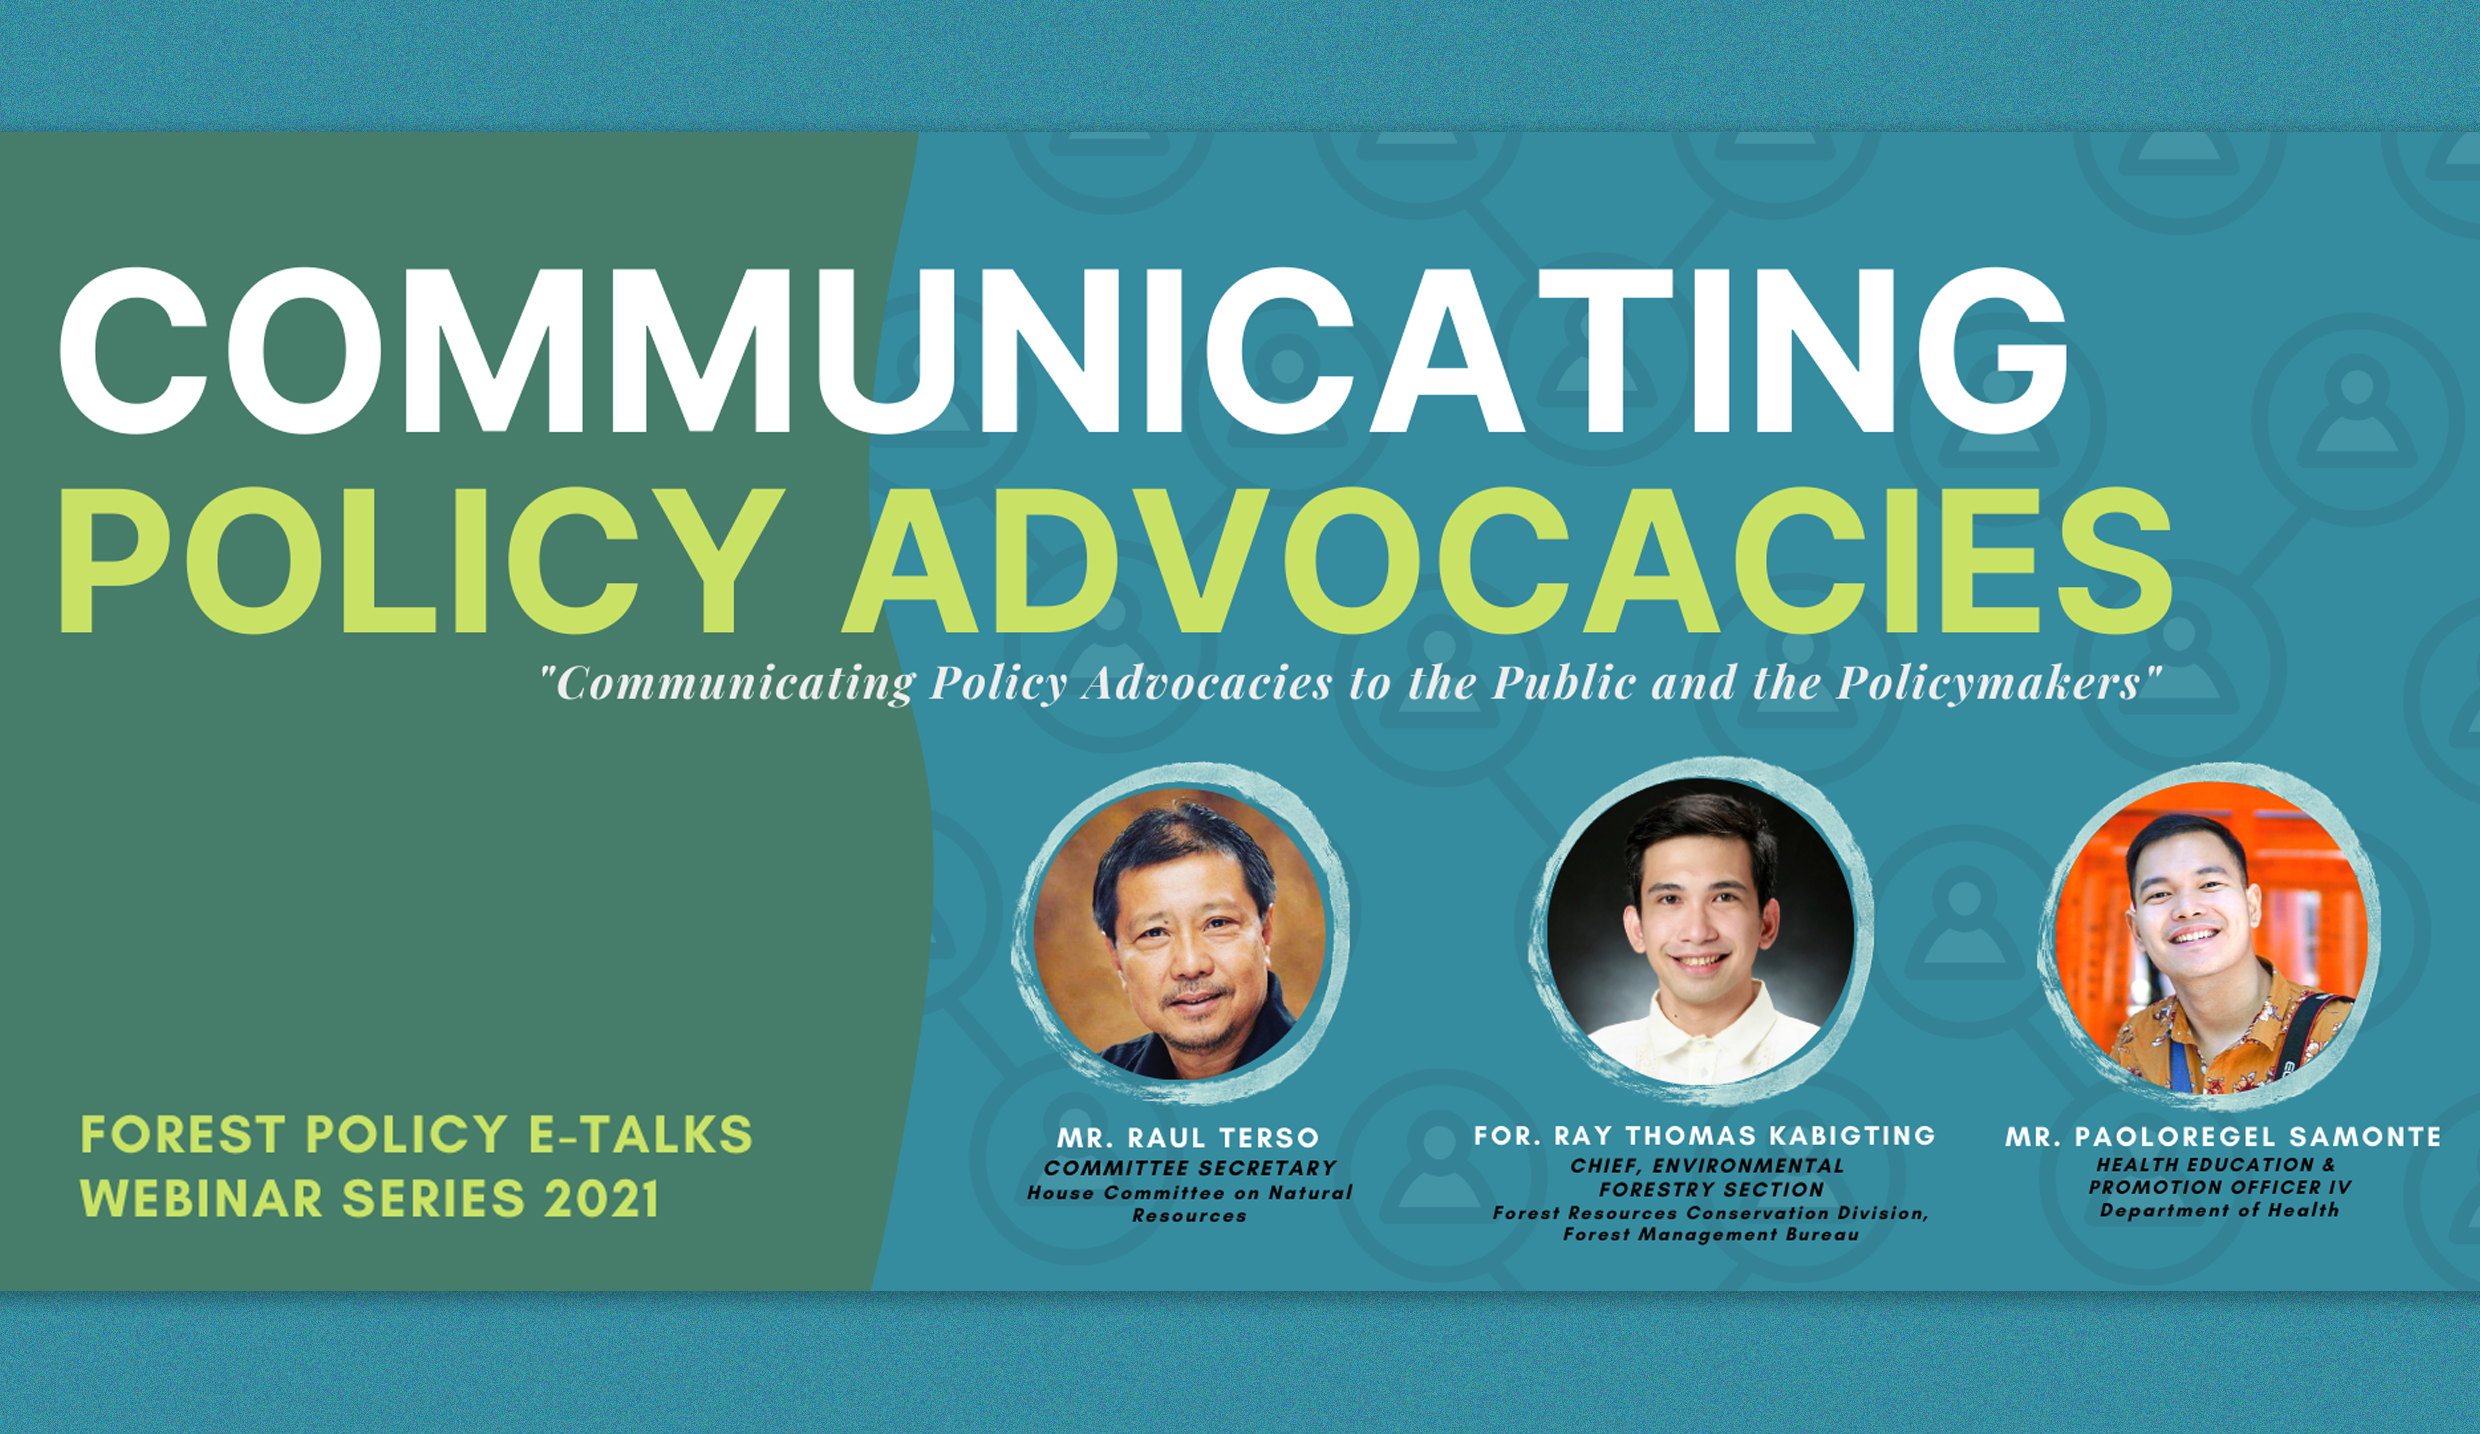 FDC tackles communicating policy advocacies in webinar